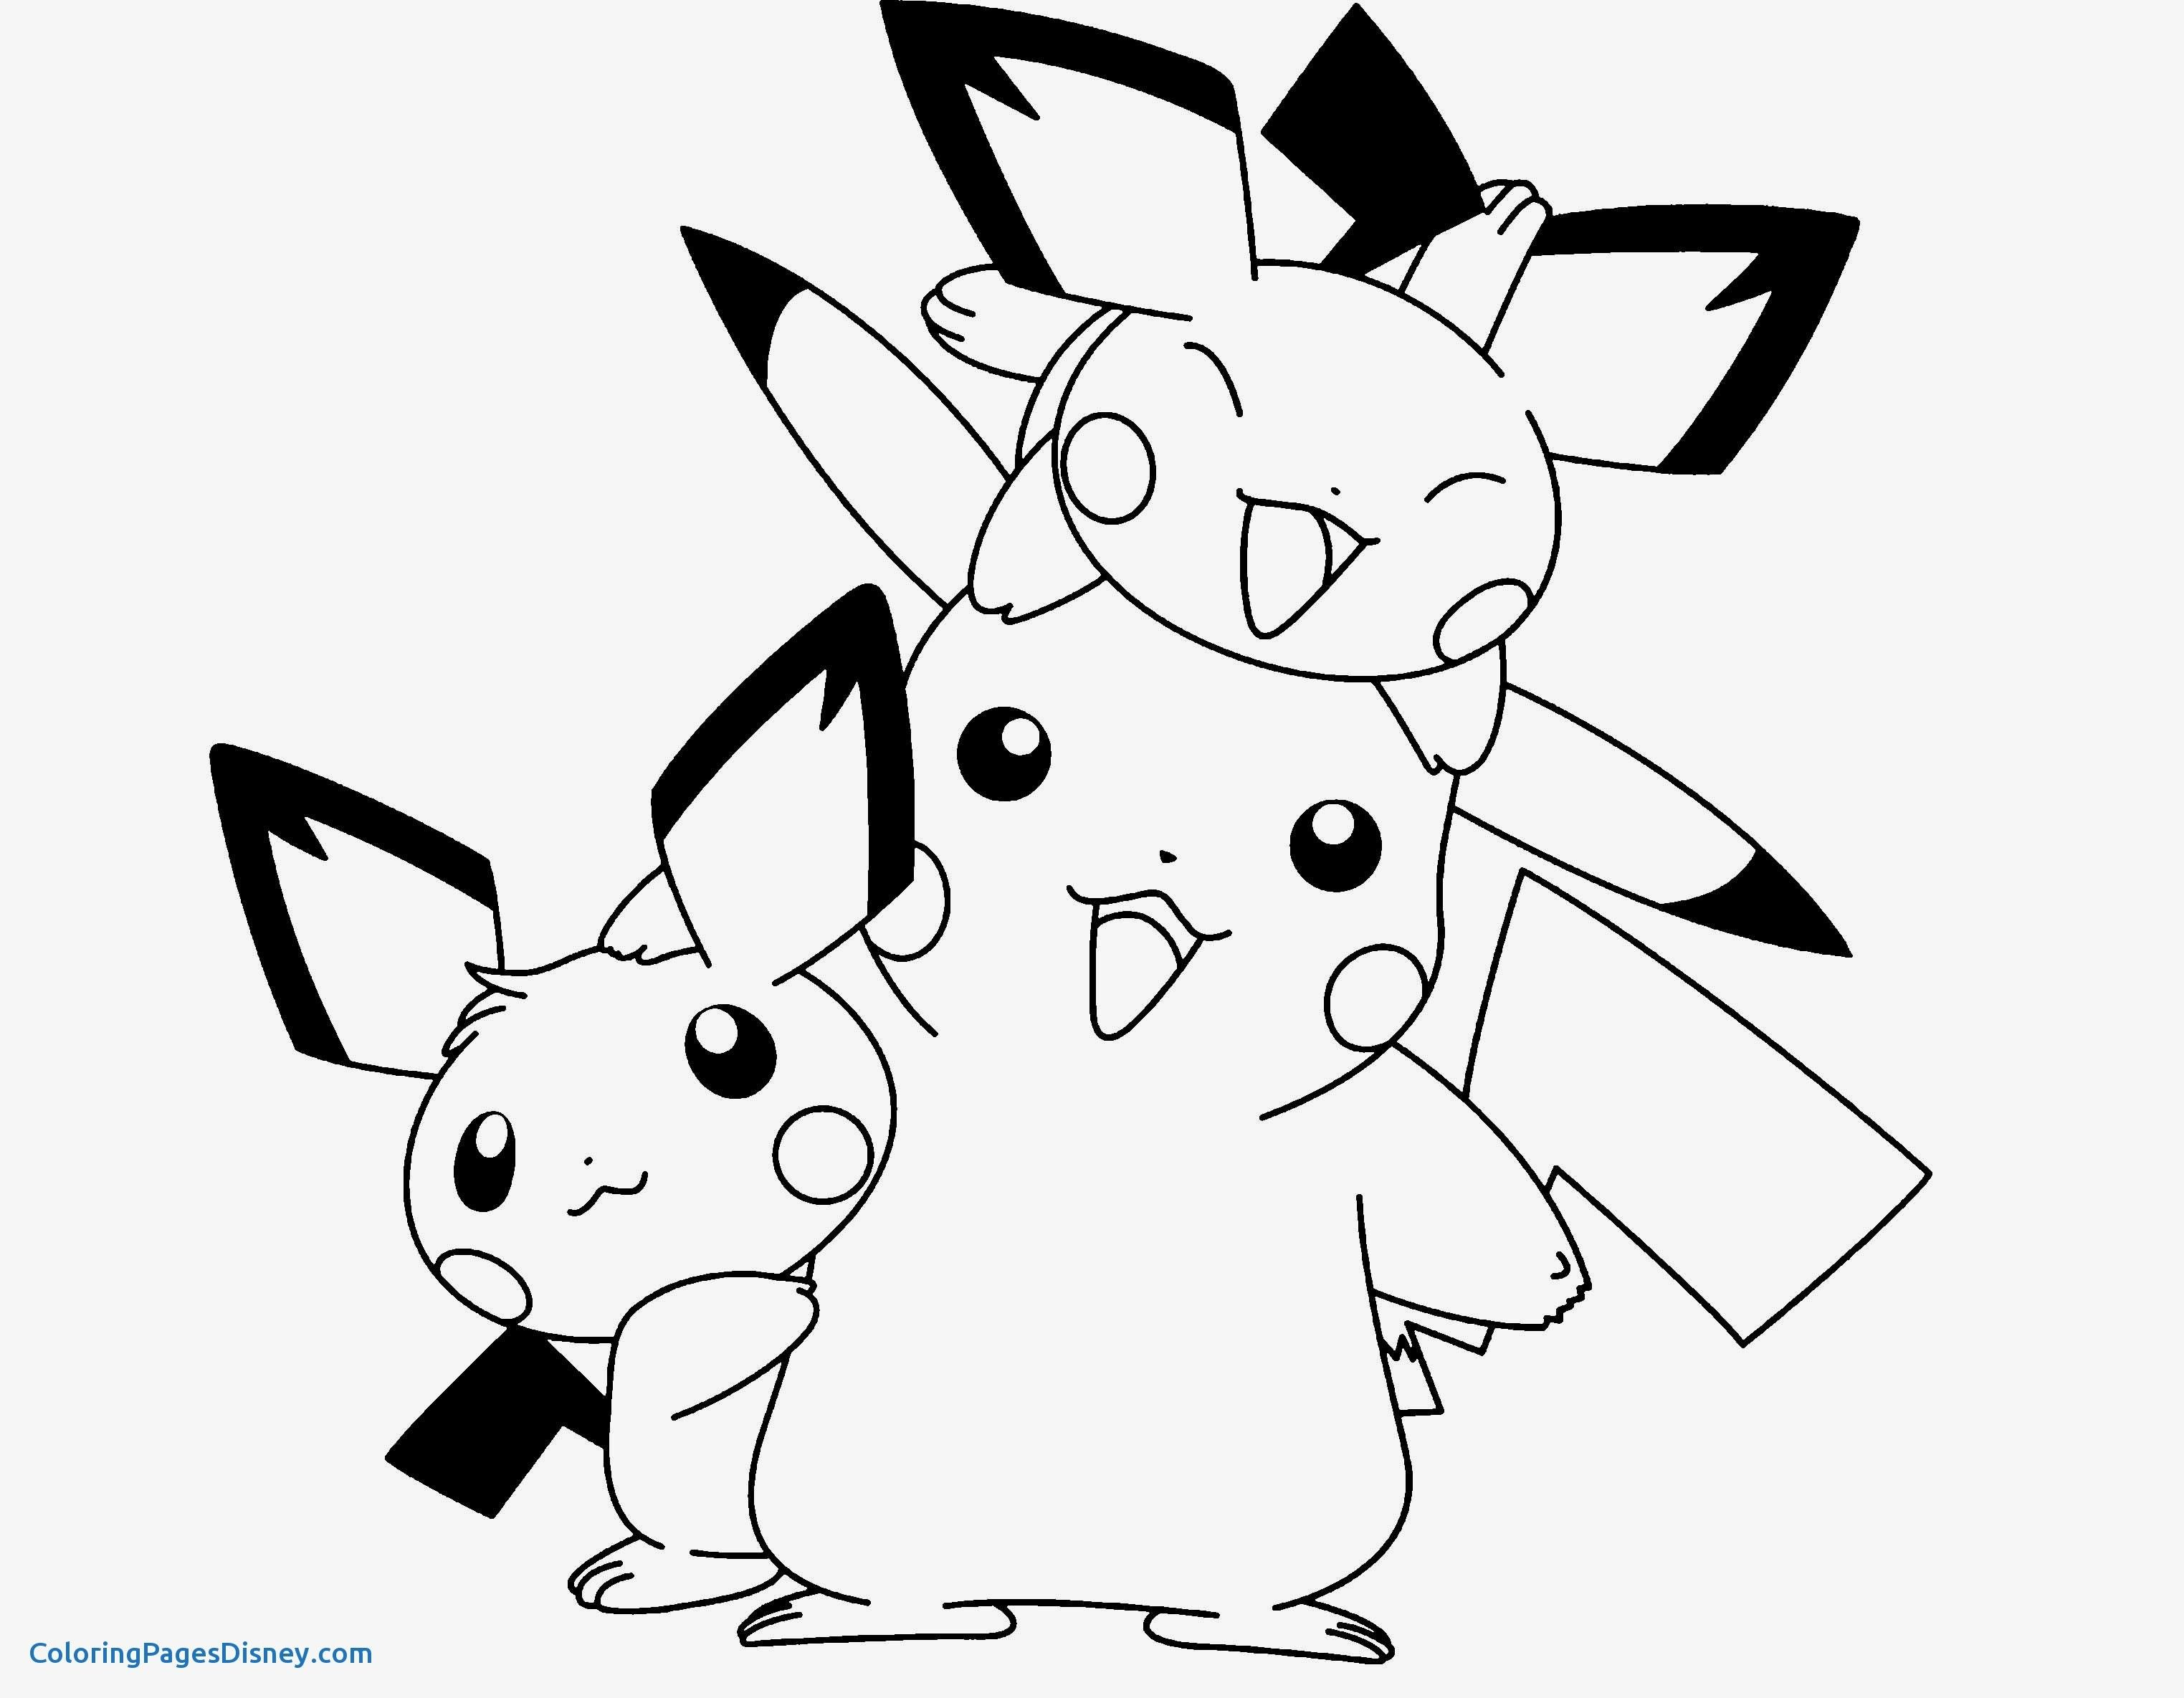 Pikachu family coloring pages through the thousands of pictures online about pikachu family coloring pages we all choices the best collections using